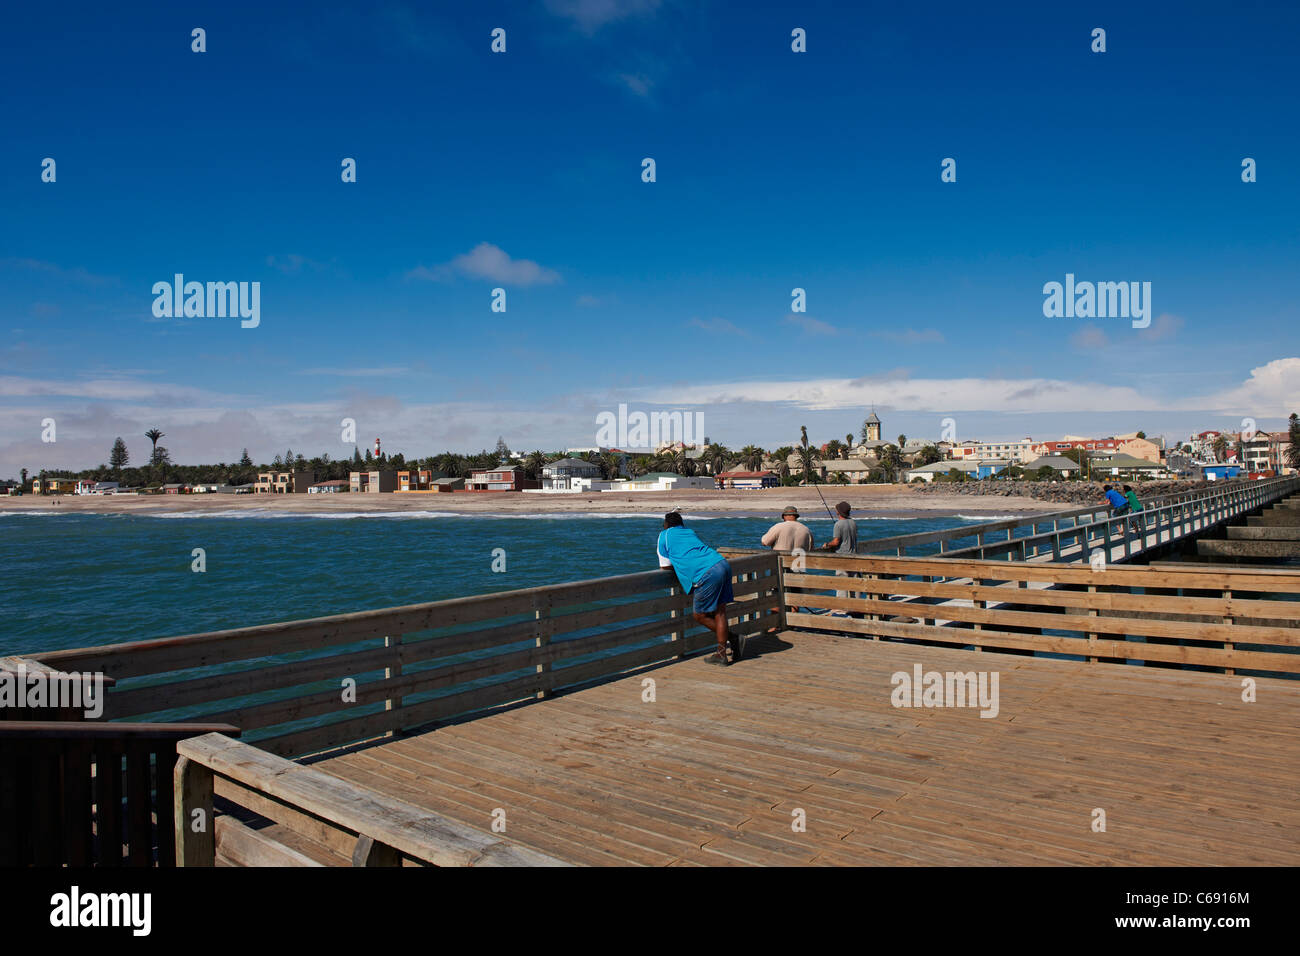 jetty at beach of Swakopmund, Namibia, Africa - Stock Image